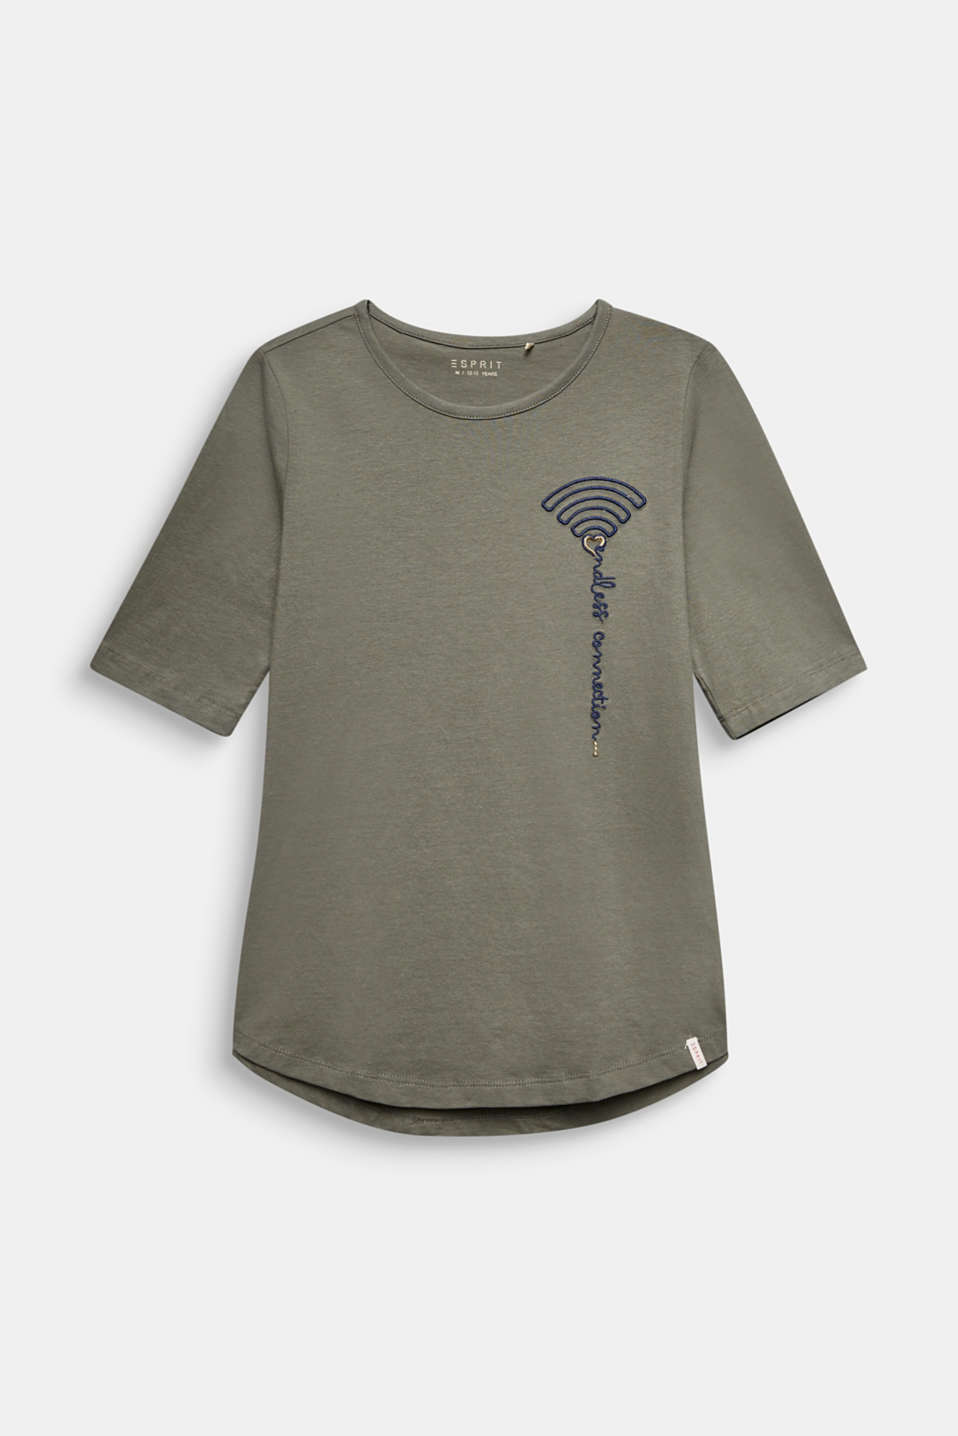 Esprit - T-shirt with WiFi embroidery, stretch cotton